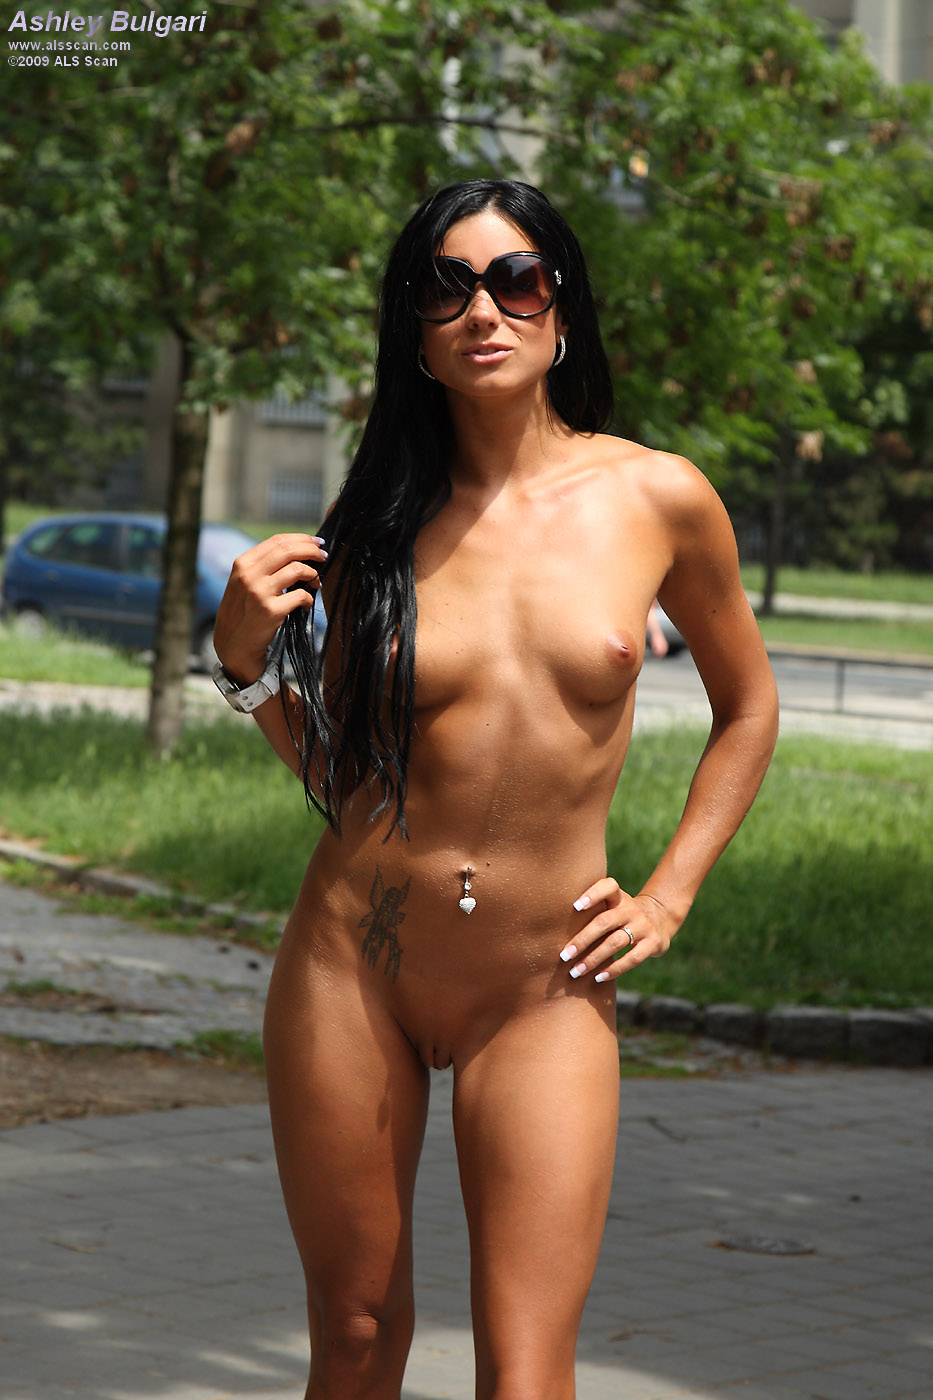 Crazy naked women in public